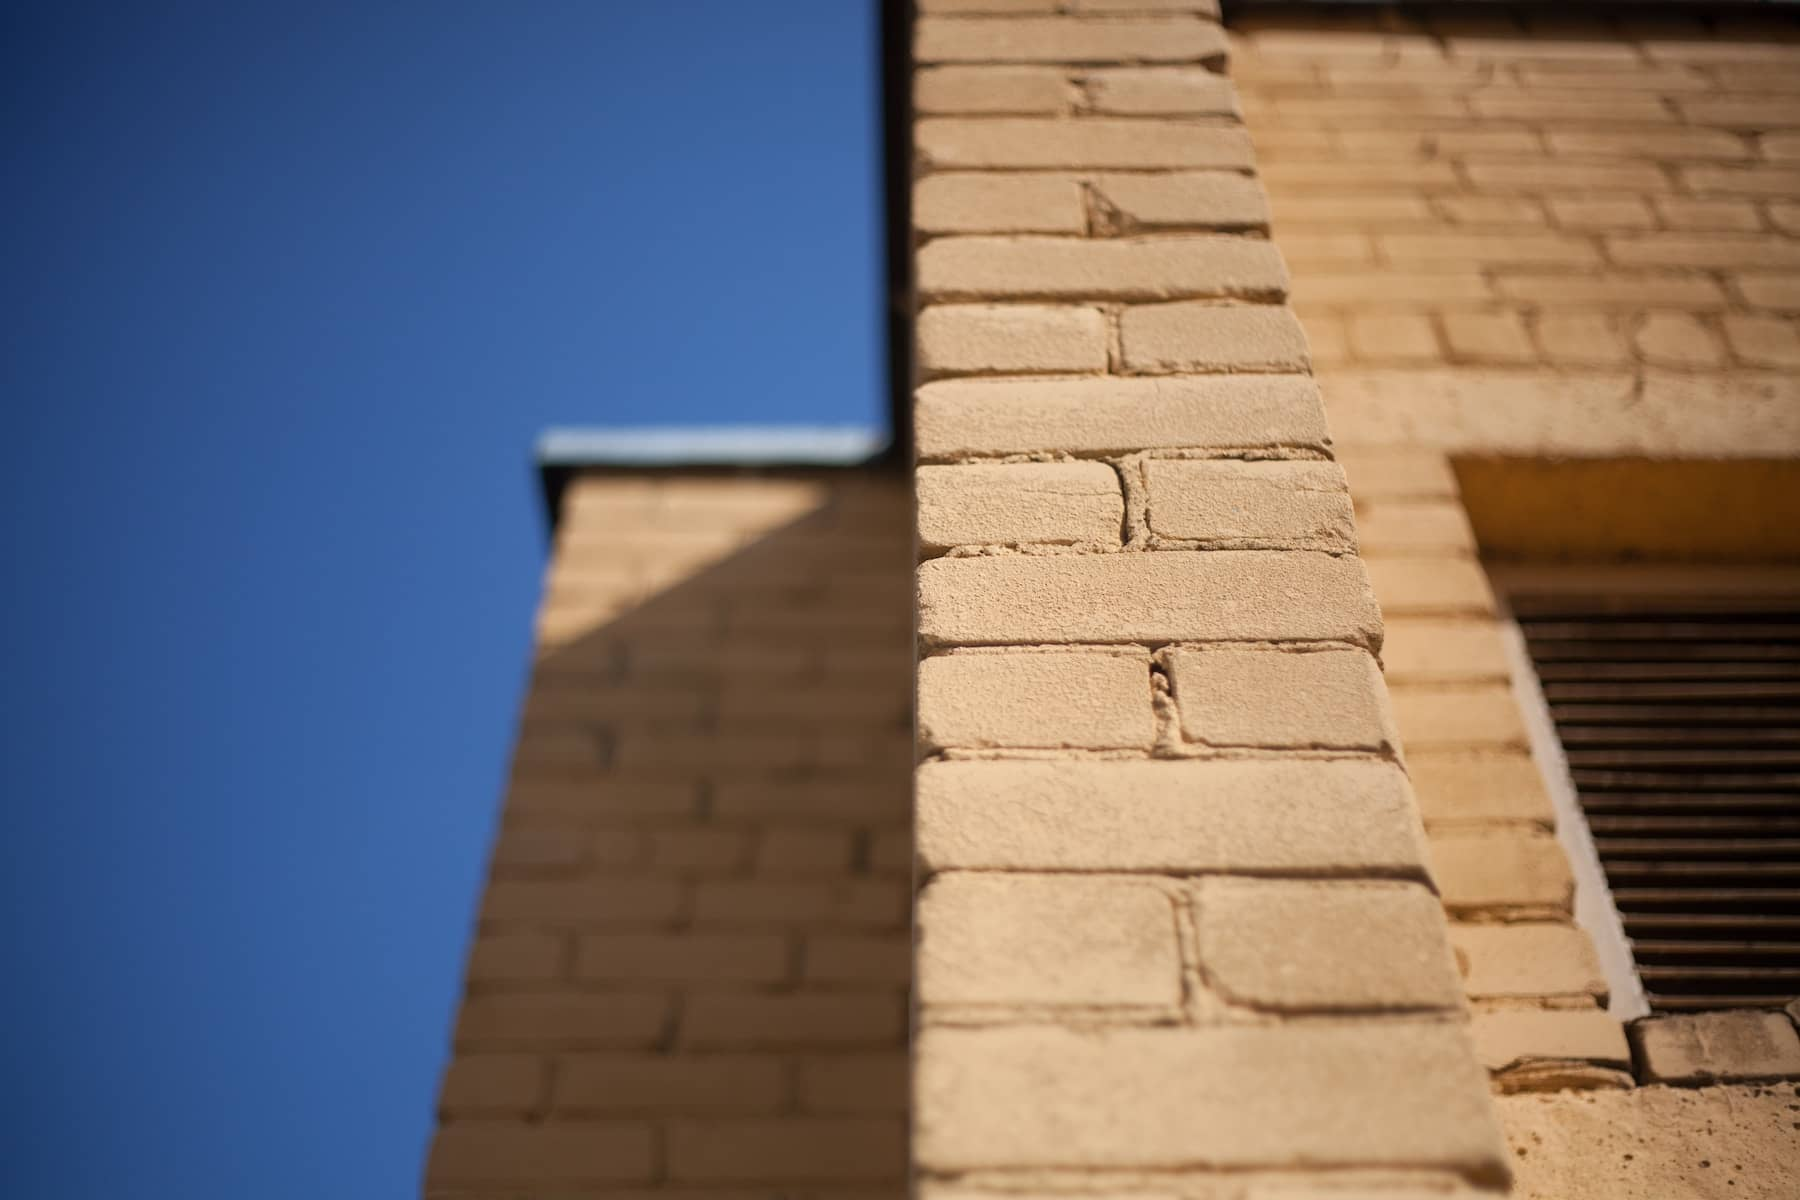 How do construction companies select building materials?